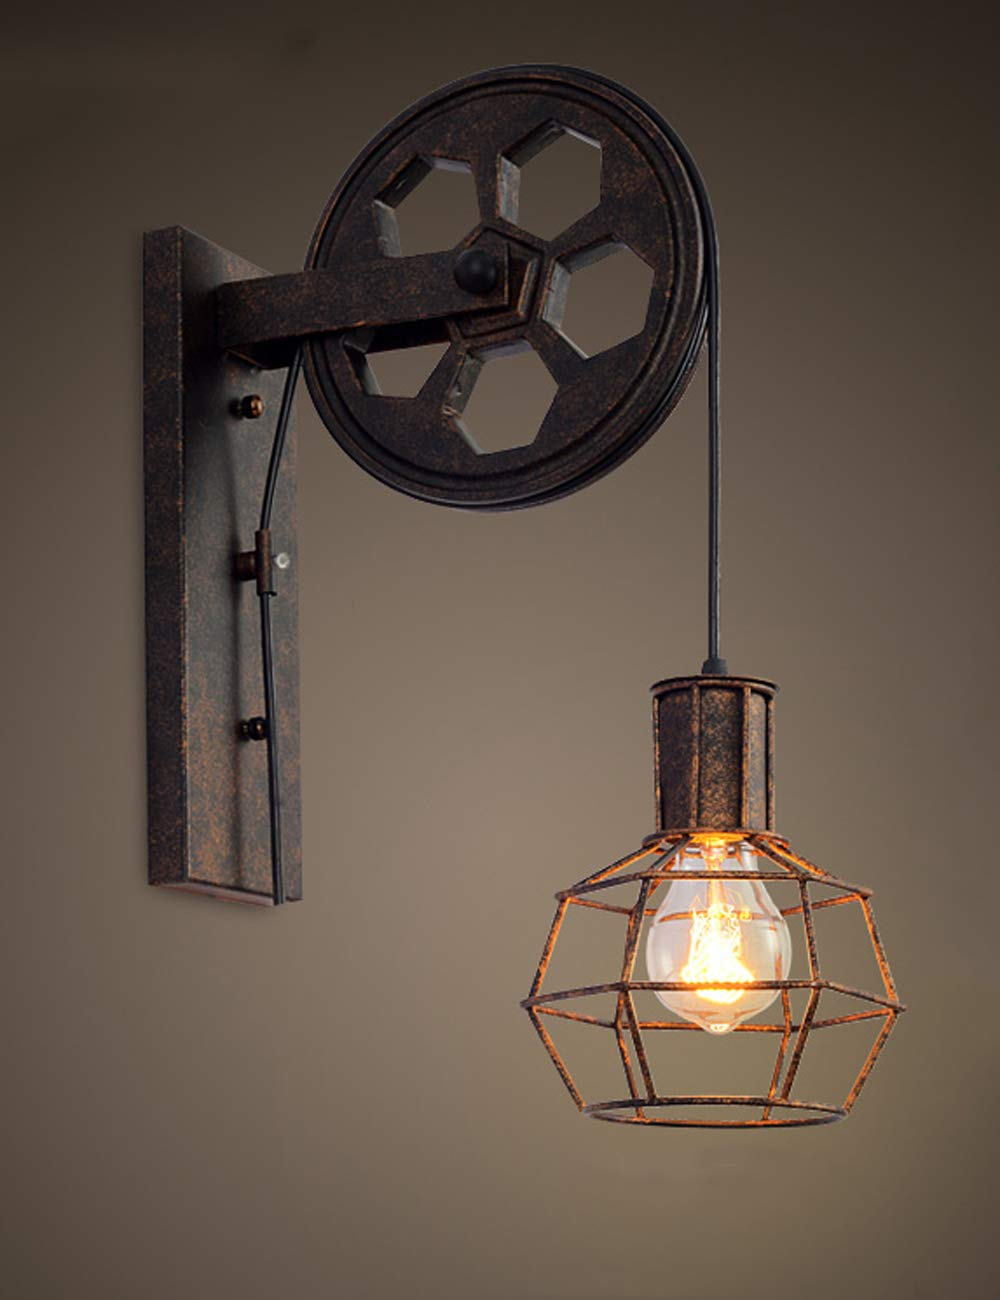 Creative Retro Industrial Style Wall Lights Loft Style Lifting Pulley Lights Aisle Corridor Wall Lamp E27 [Energy Class A+]